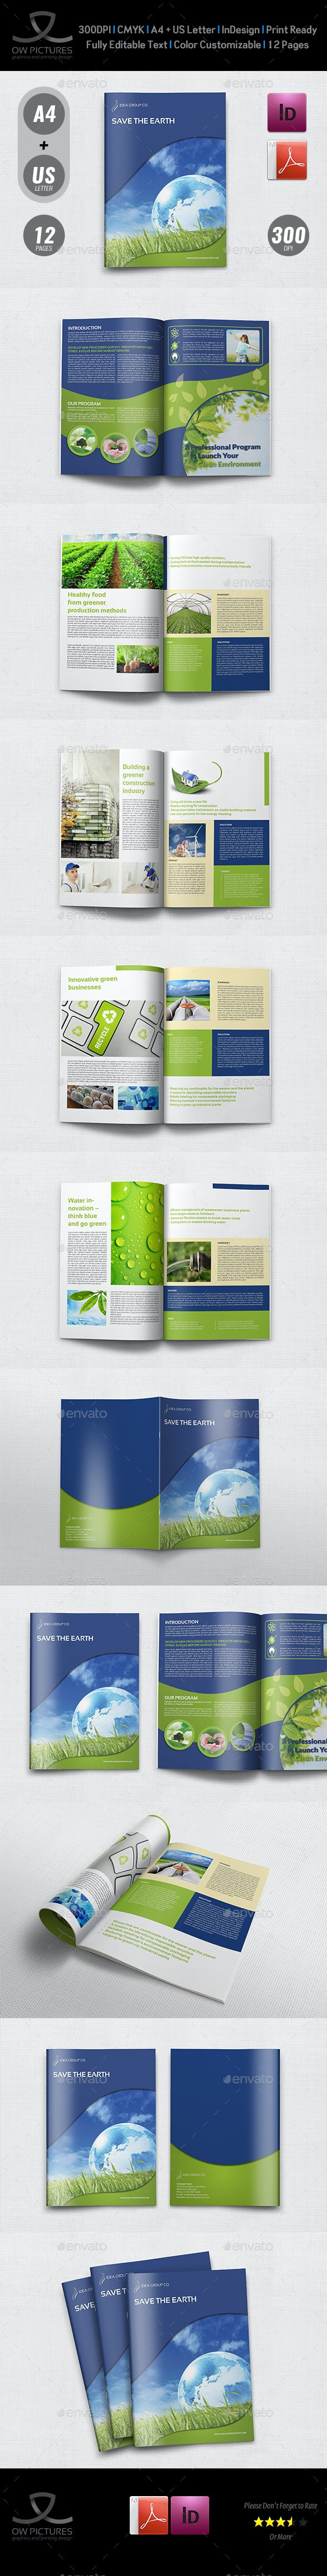 Environment ECO Brochure Template - 12 Pages - Brochures Print Templates